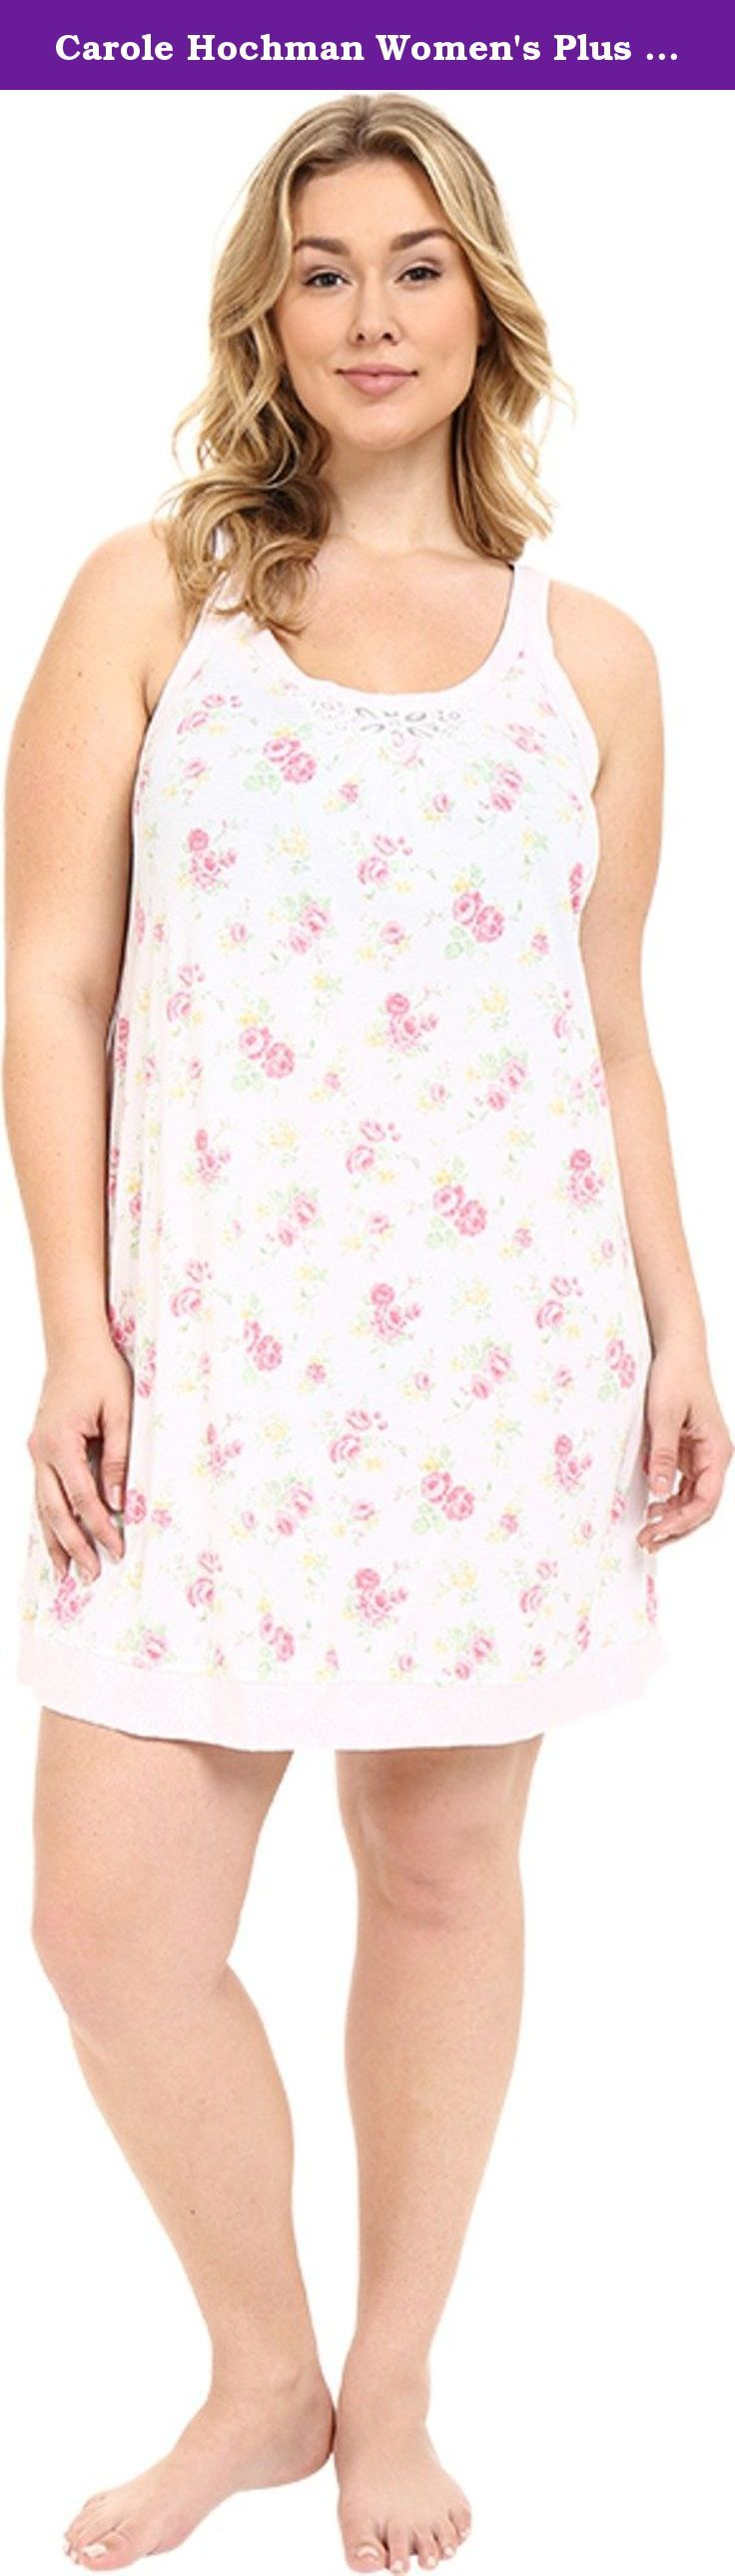 Carole Hochman Women's Plus Size Floral Chemise Rose Meadow Nightgown 1X. Relaxed silhouette. Flaunts a soft cotton fabrication with a lovely floral pattern all throughout for a classic feminine look. Lace detail at Scoop neckline creates a flirty look. Fixed shoulder straps. Straight hemline. Slip-on. 100% cotton. Machine wash cold, tumble dry low.